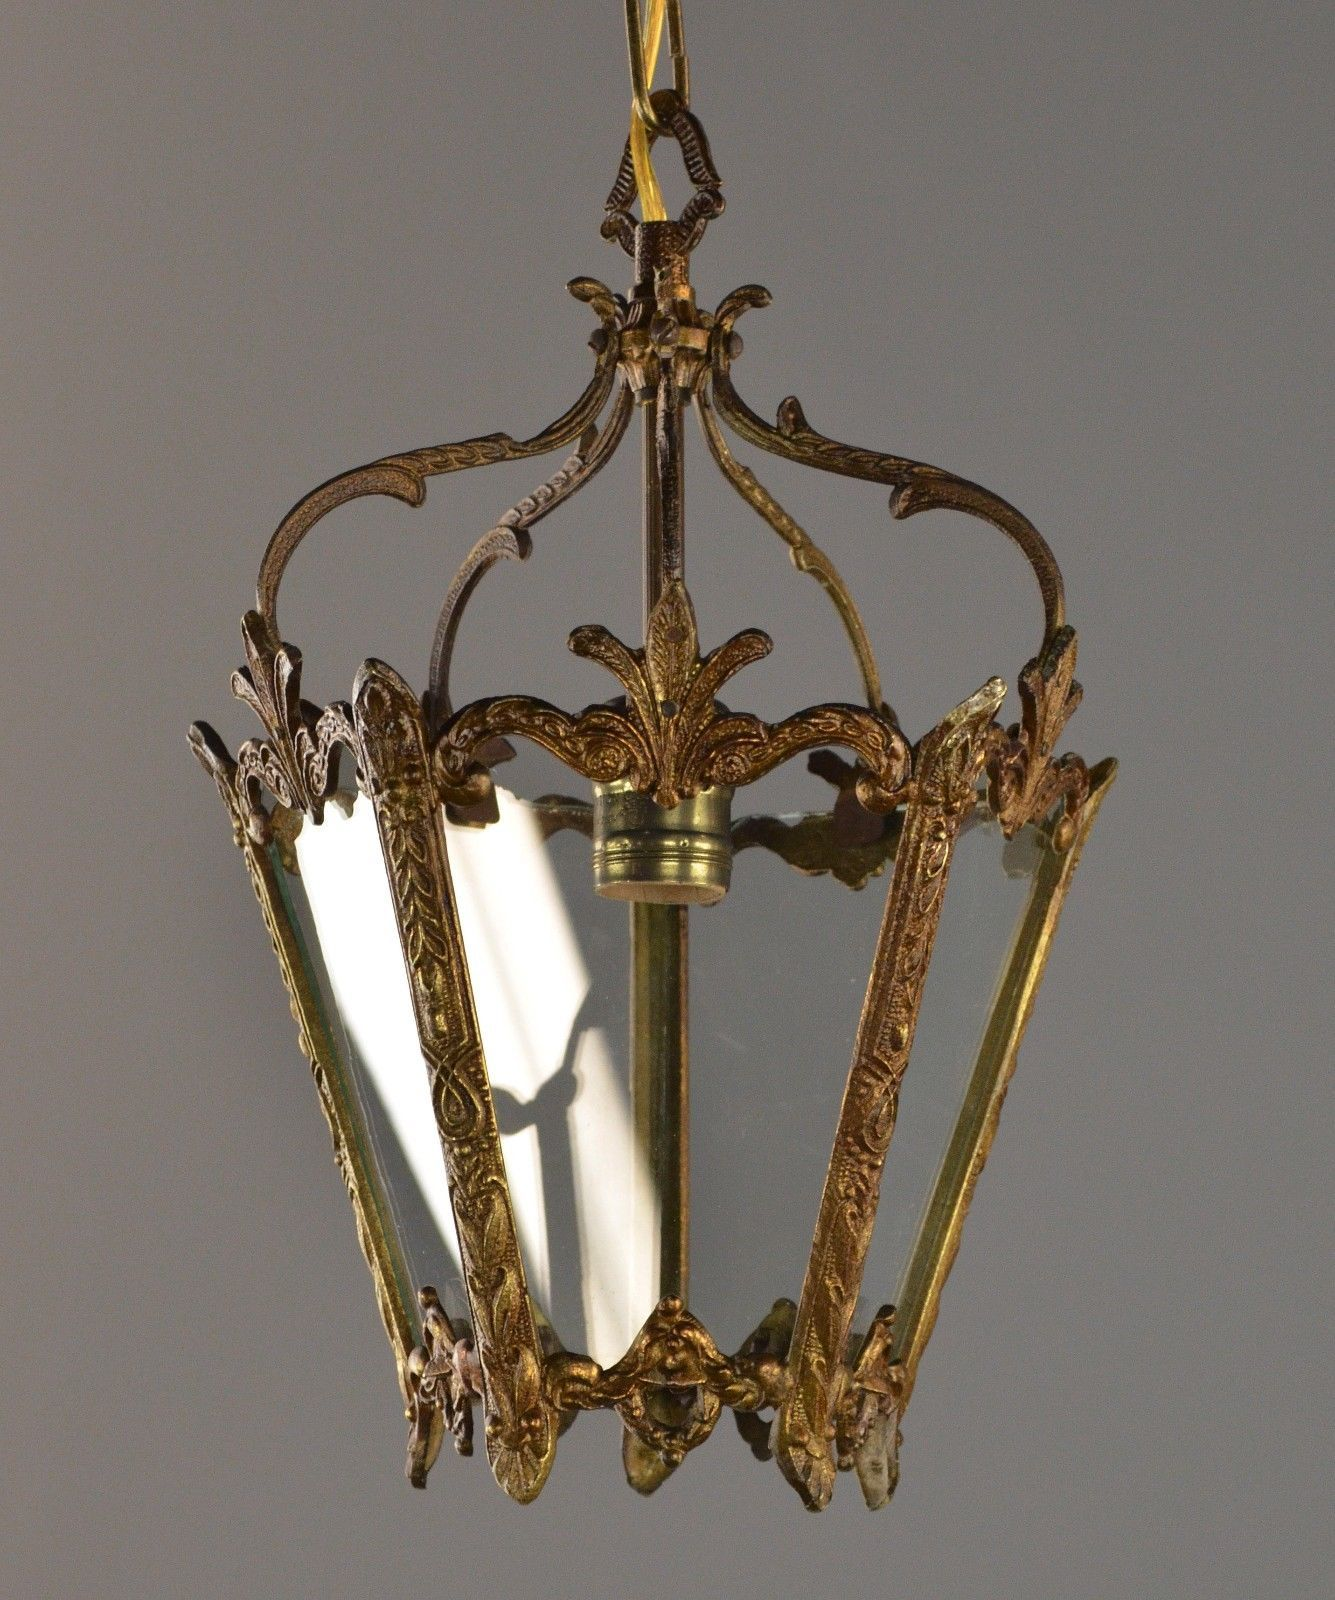 Antiques Gifts Antique Chandelier Lantern Pendant Light Restored